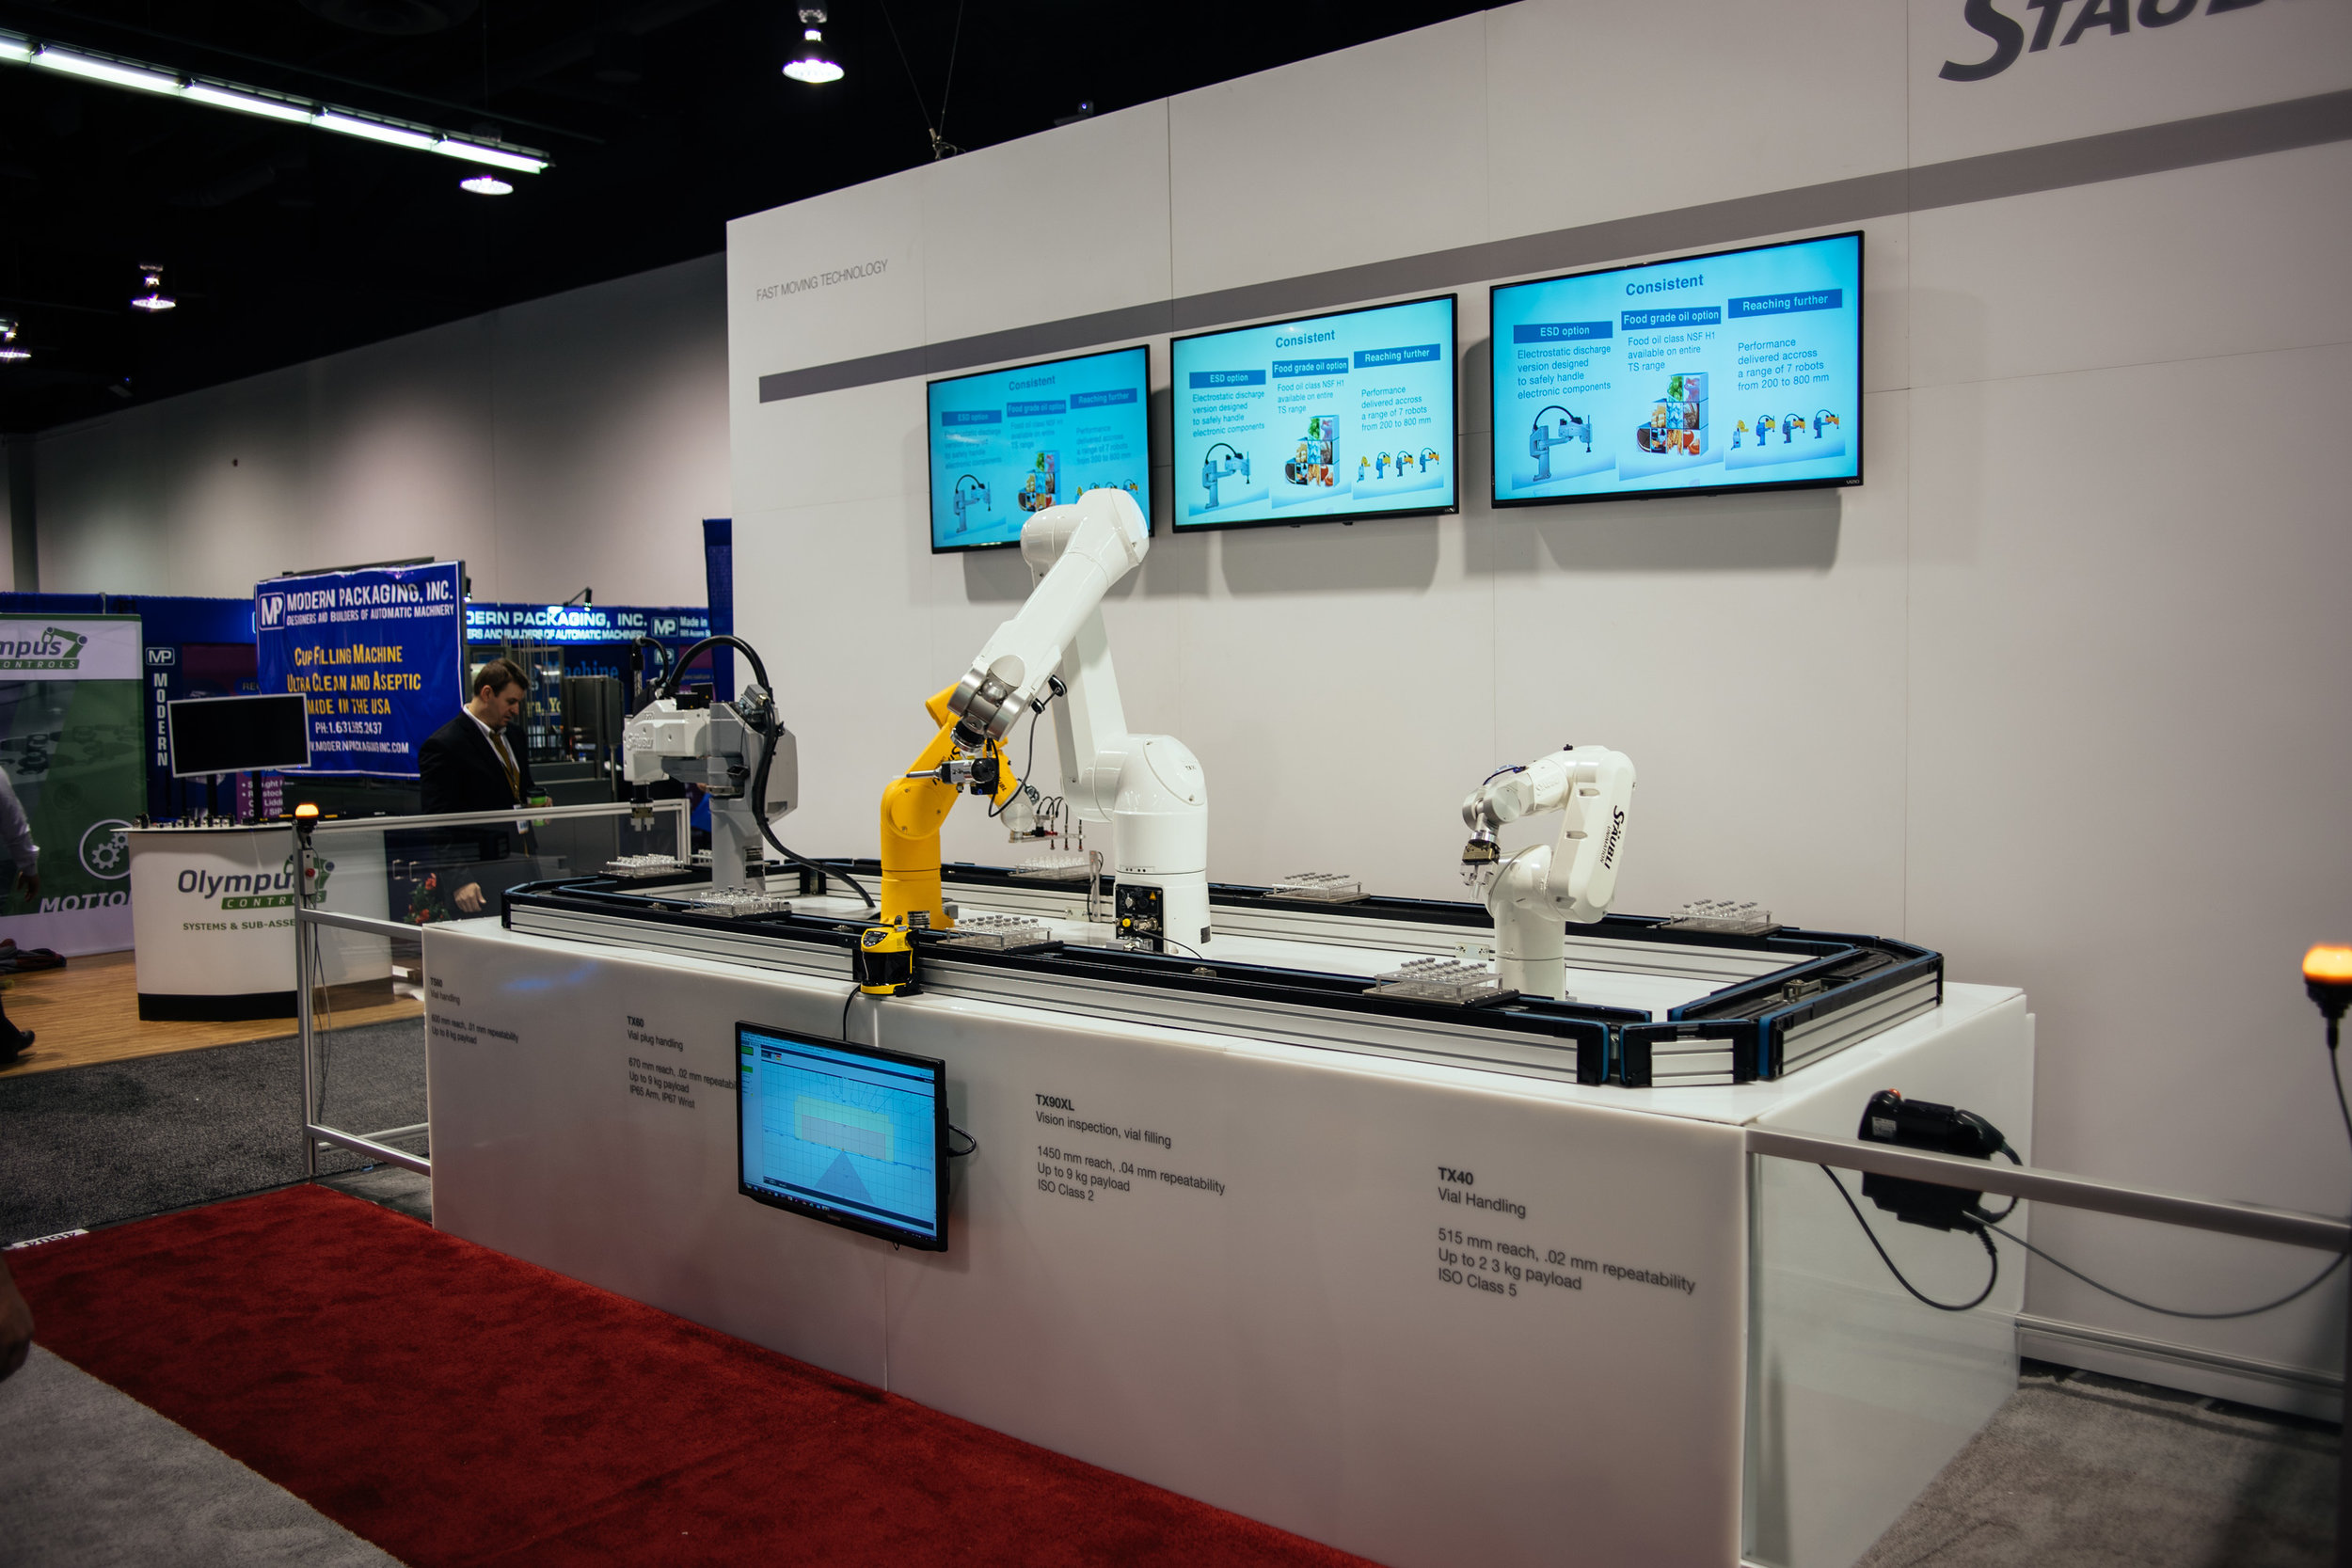 Robotic arms are advancing every year; cool to see the latest and greatest.